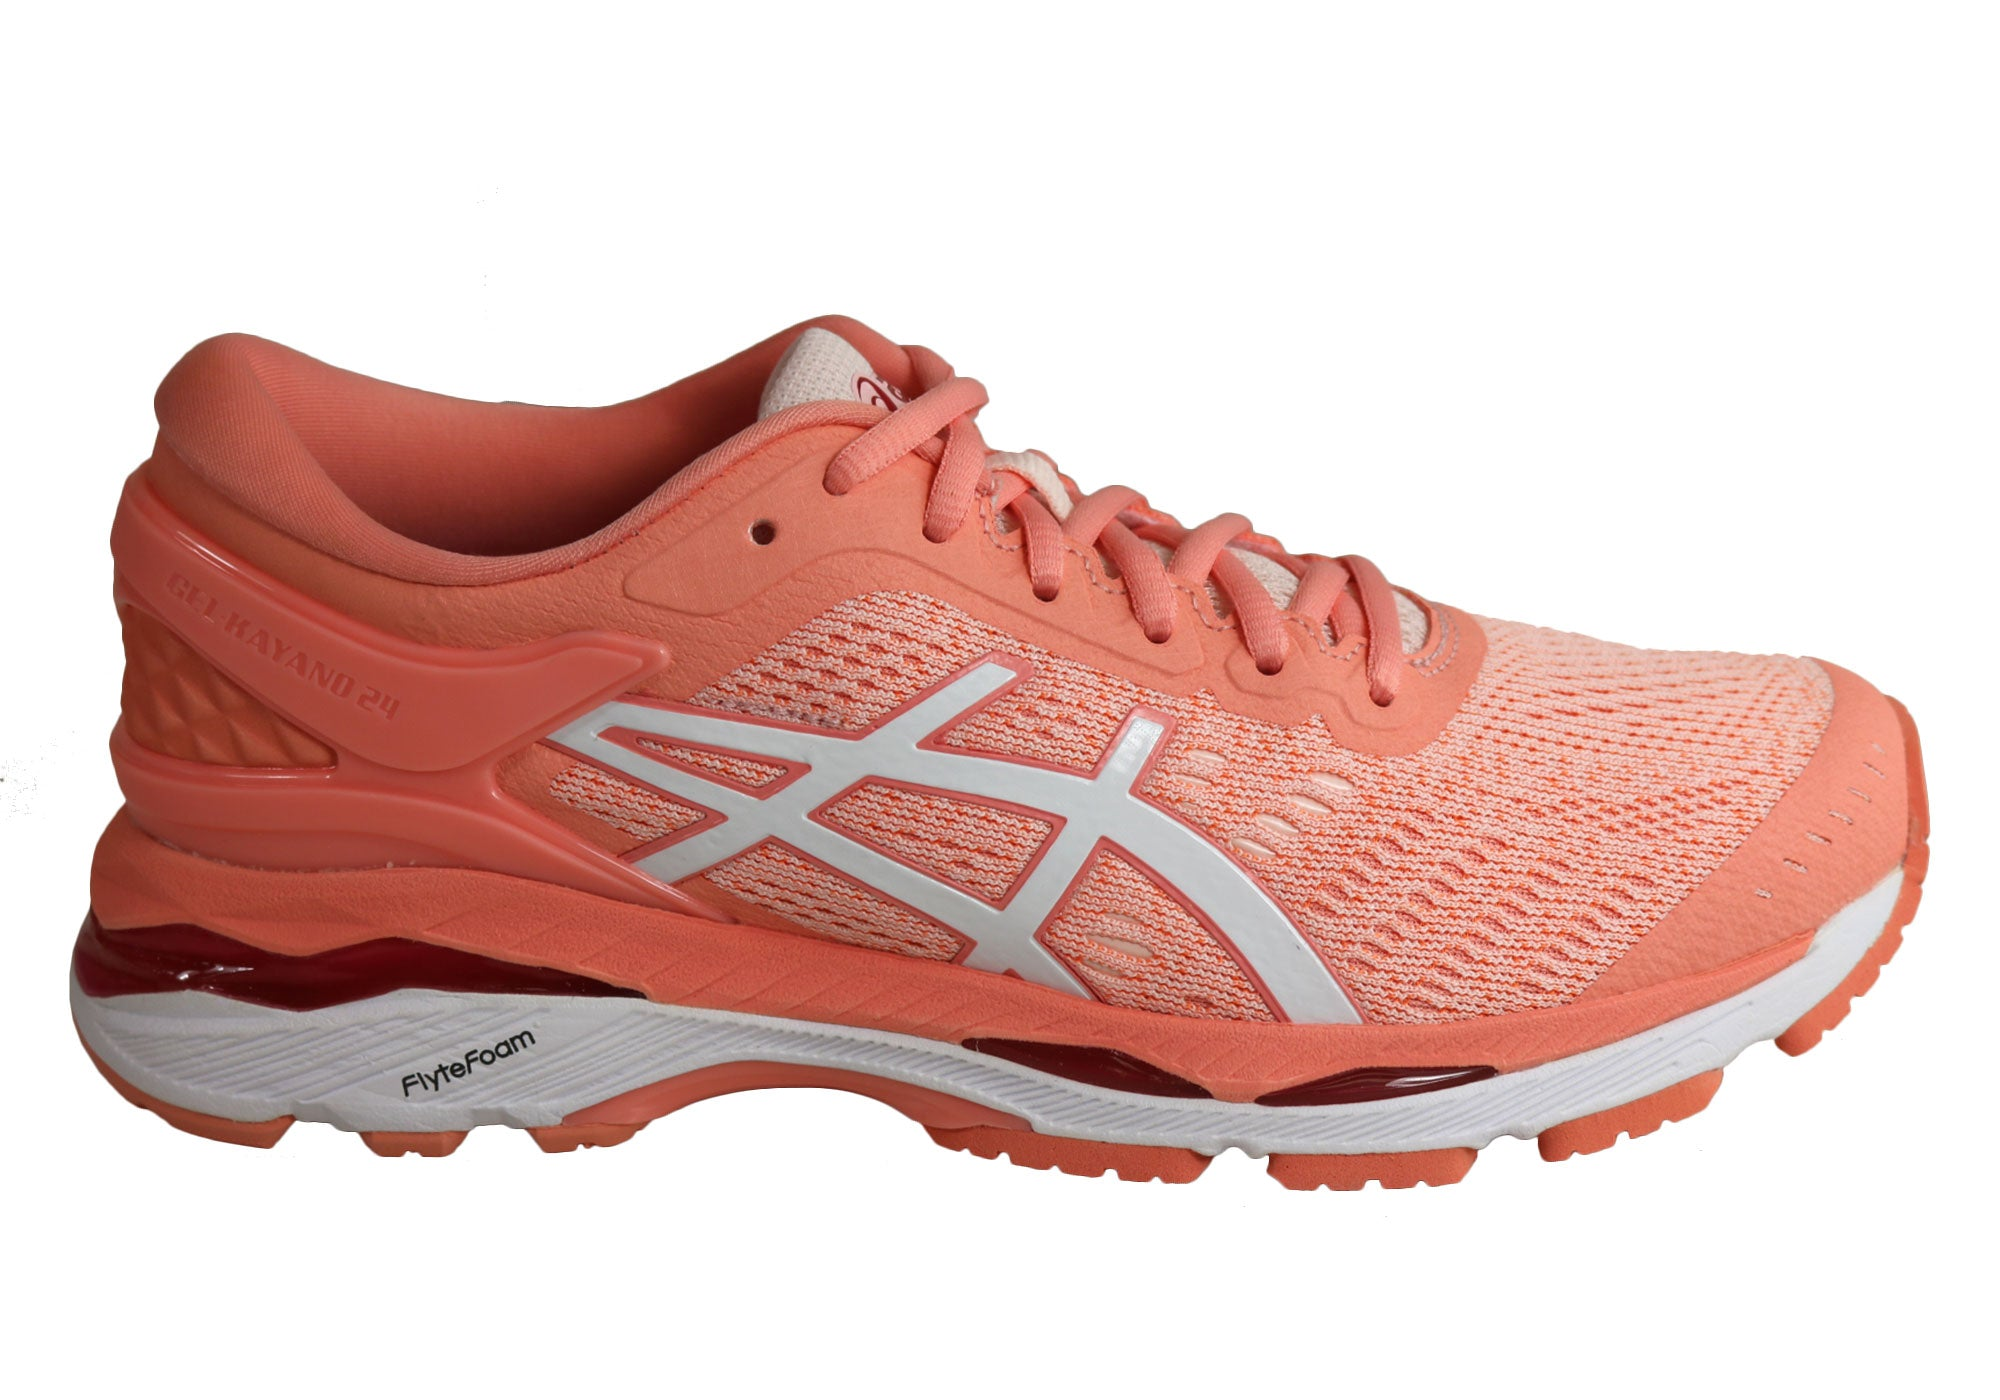 new product c623d 1a0e7 Asics Gel-Kayano 24 Womens Premium Cushioned Running Sport Shoes